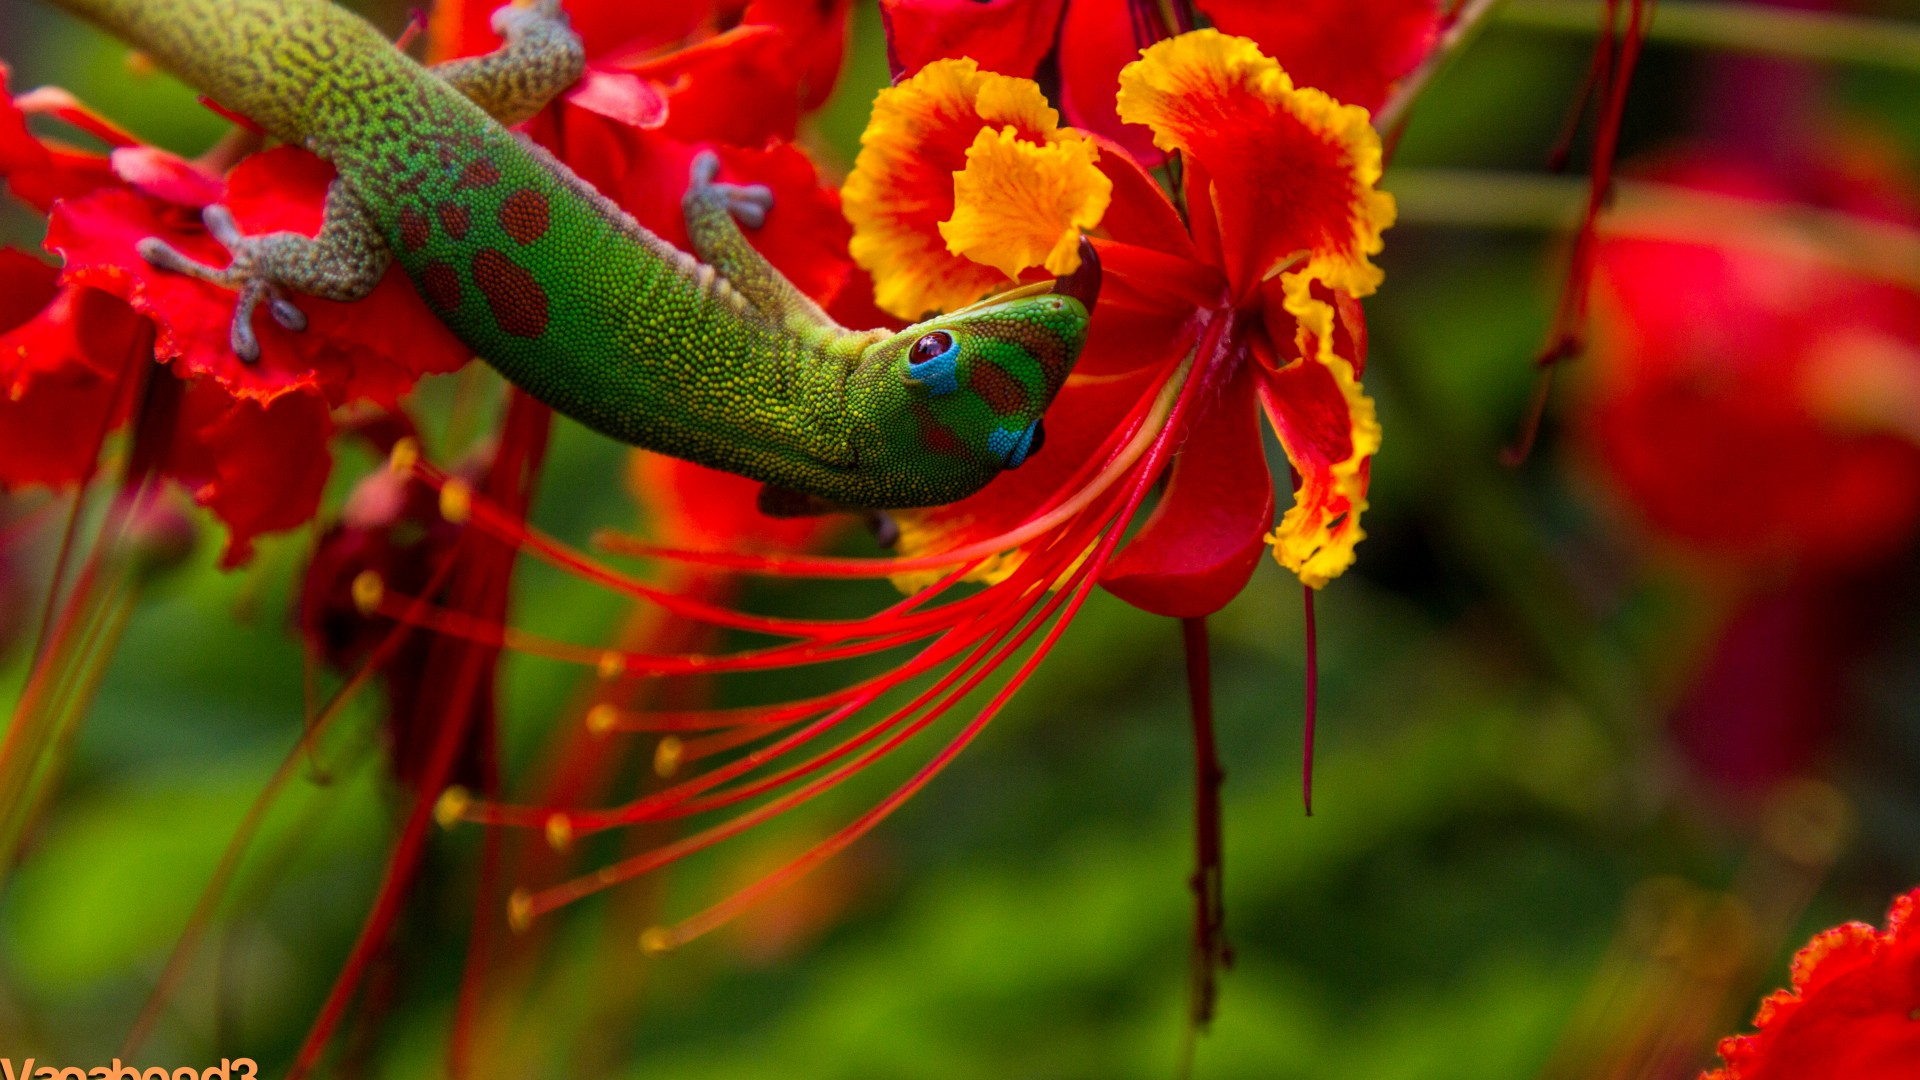 Beautiful Flower Wallpapers With Quotes Wallpaper Lizard Hilo Hawaii Lizard Green Flowers Red